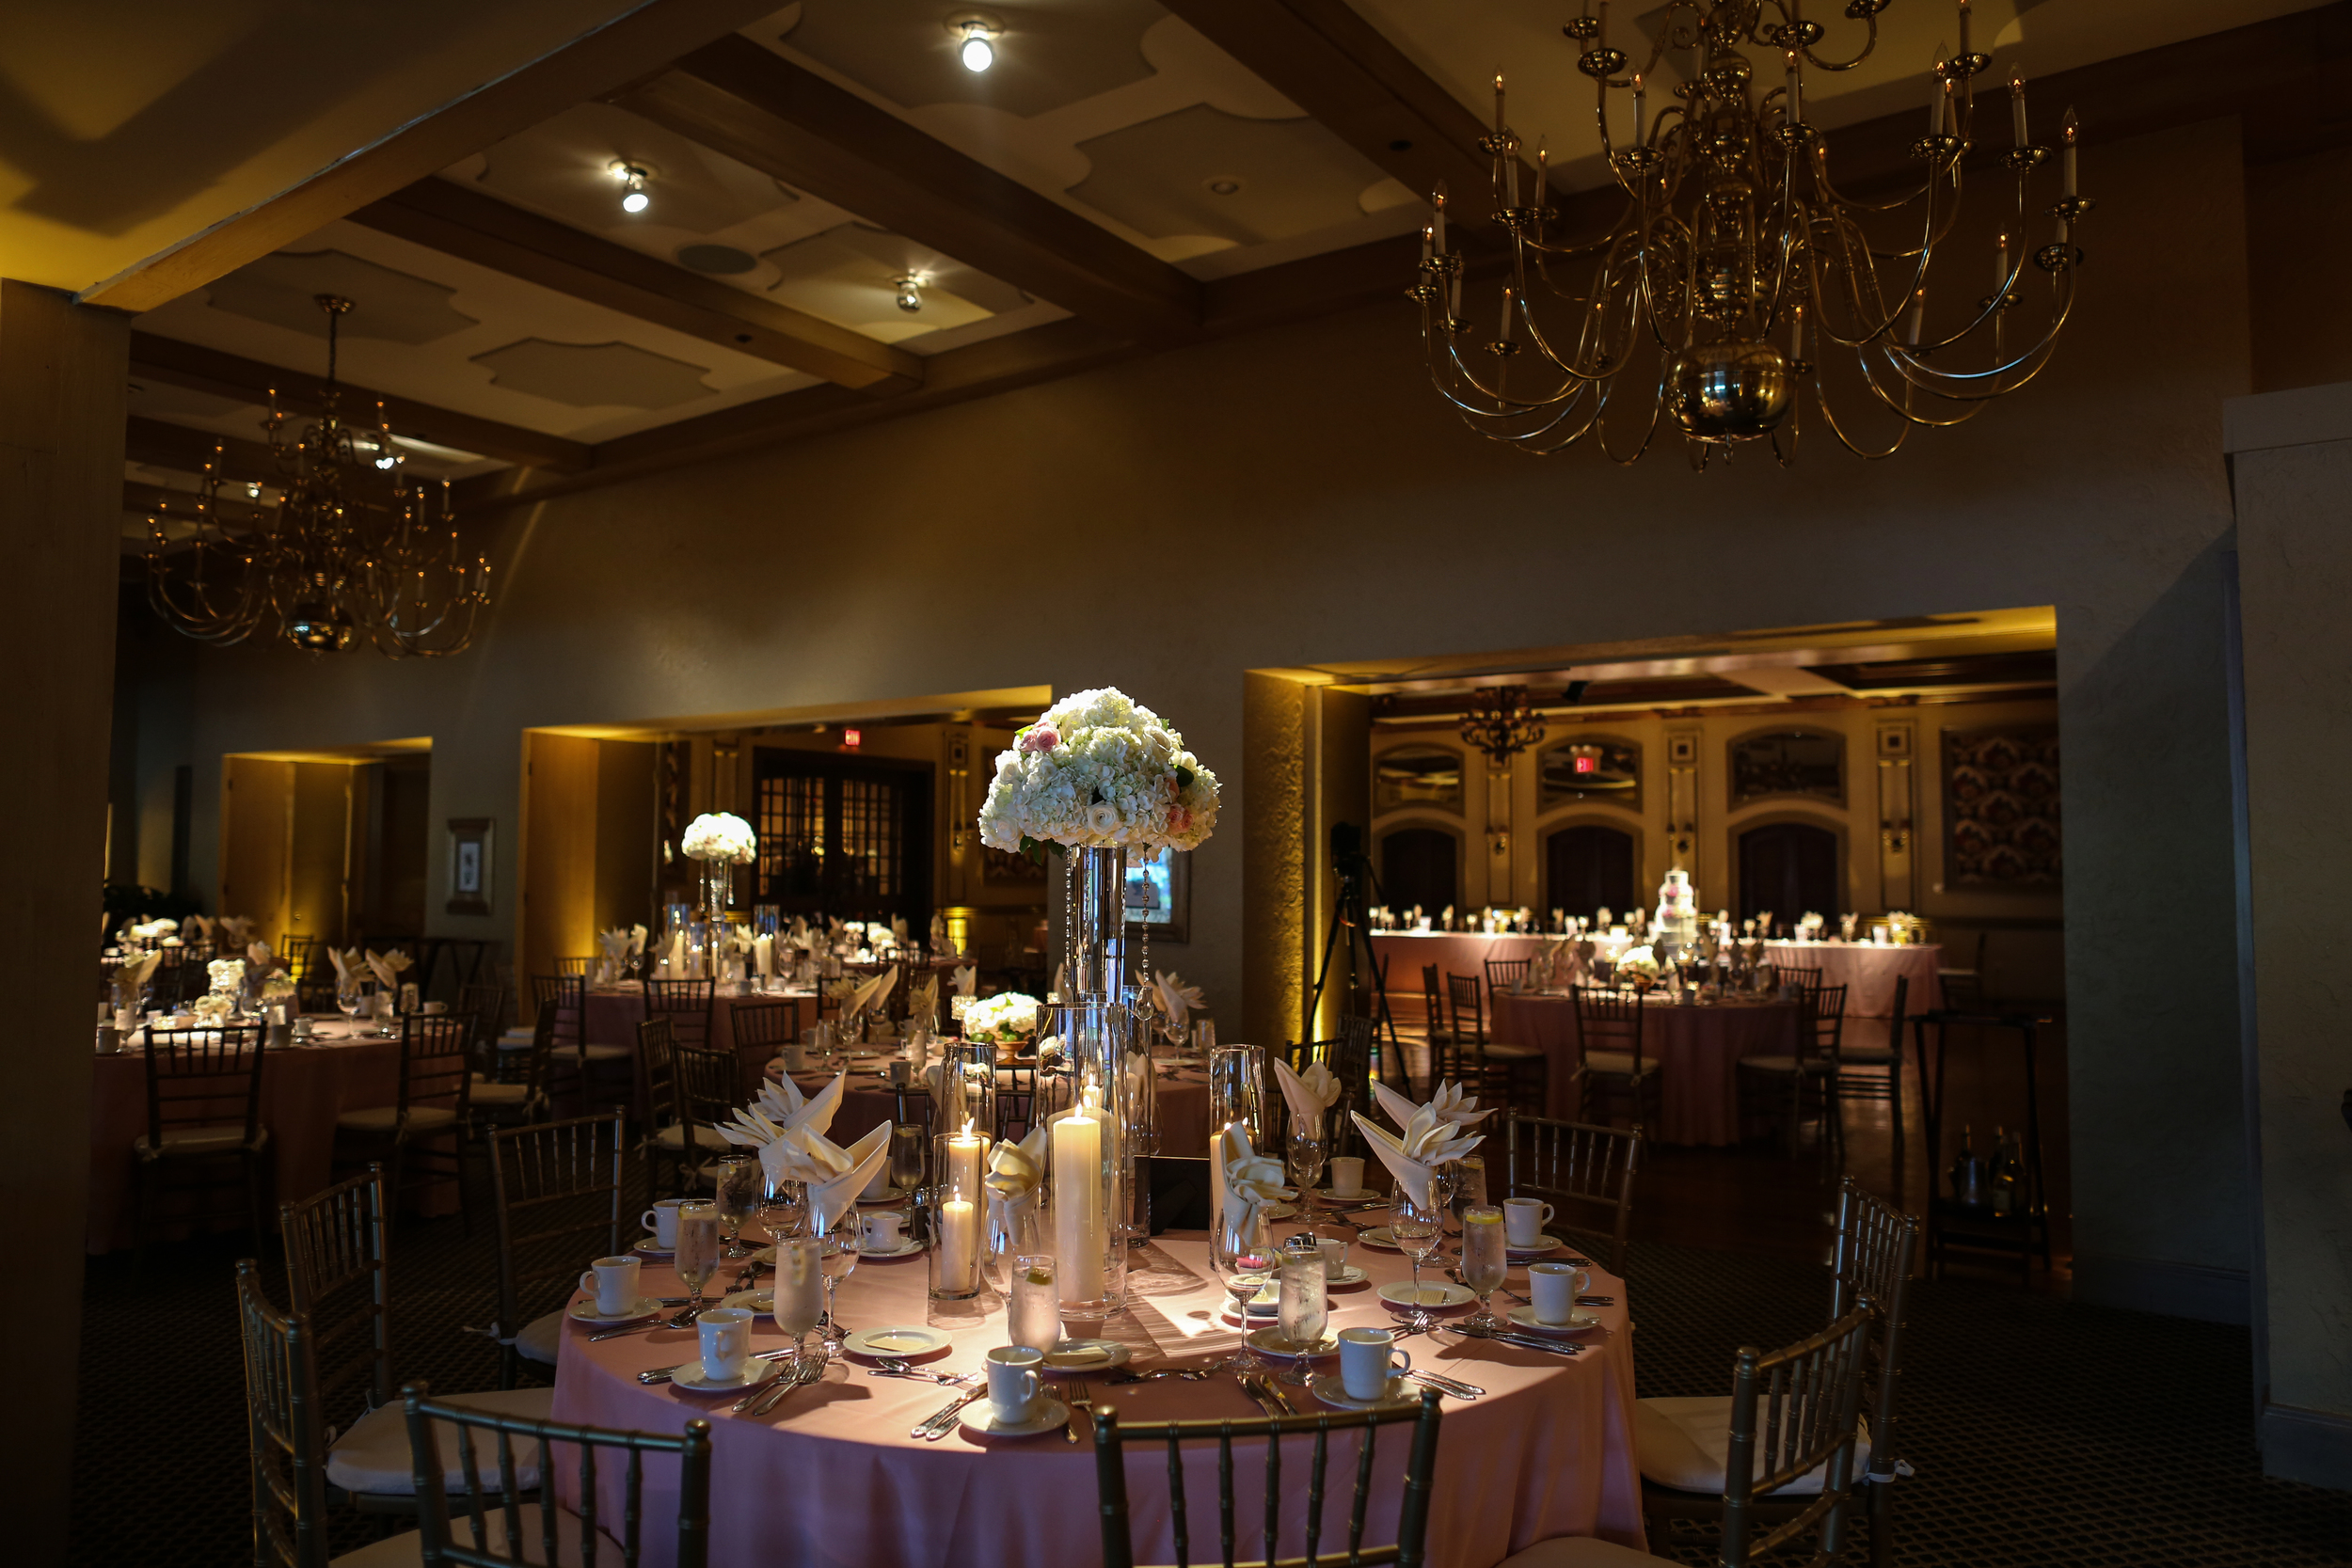 Spread throughout the reception were tall Pilsner vases filled with ivory Hydrangea, White Dove Roses, Lemon Leaf, and Starblush Spray Roses. Hanging crystals brought Katie's vision to life.